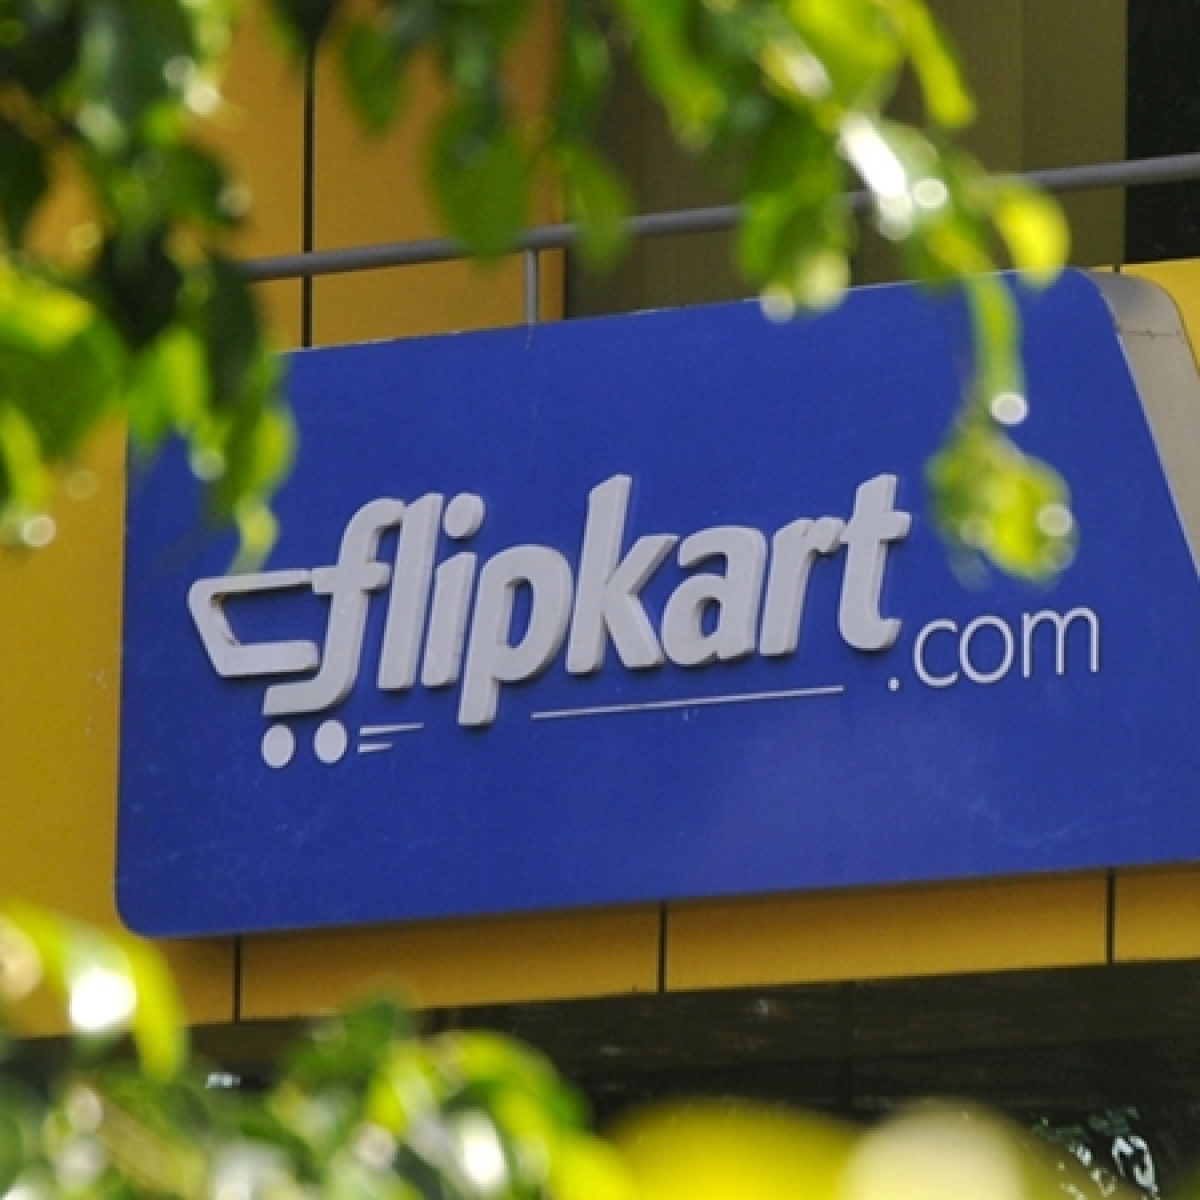 Nagaland not part of India? Why Twitter users are furious at Flipkart